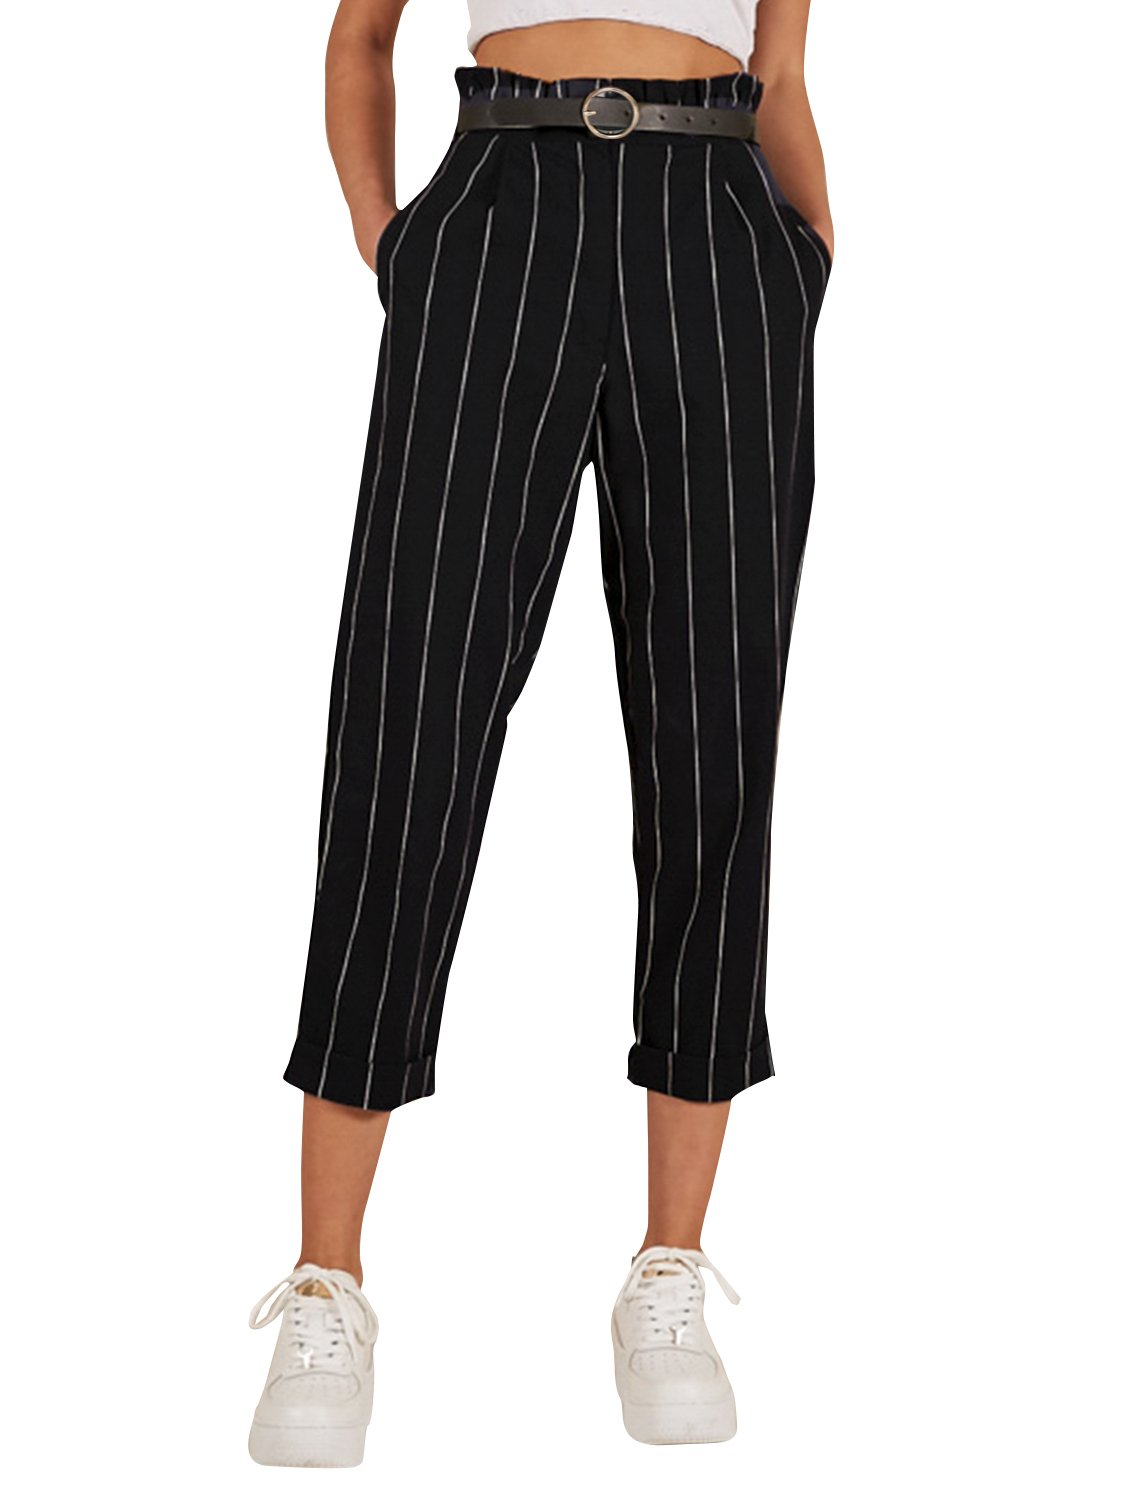 Simplee Apparel Women's Casual High Waisted Stripes Pants with Pockets Black US 8